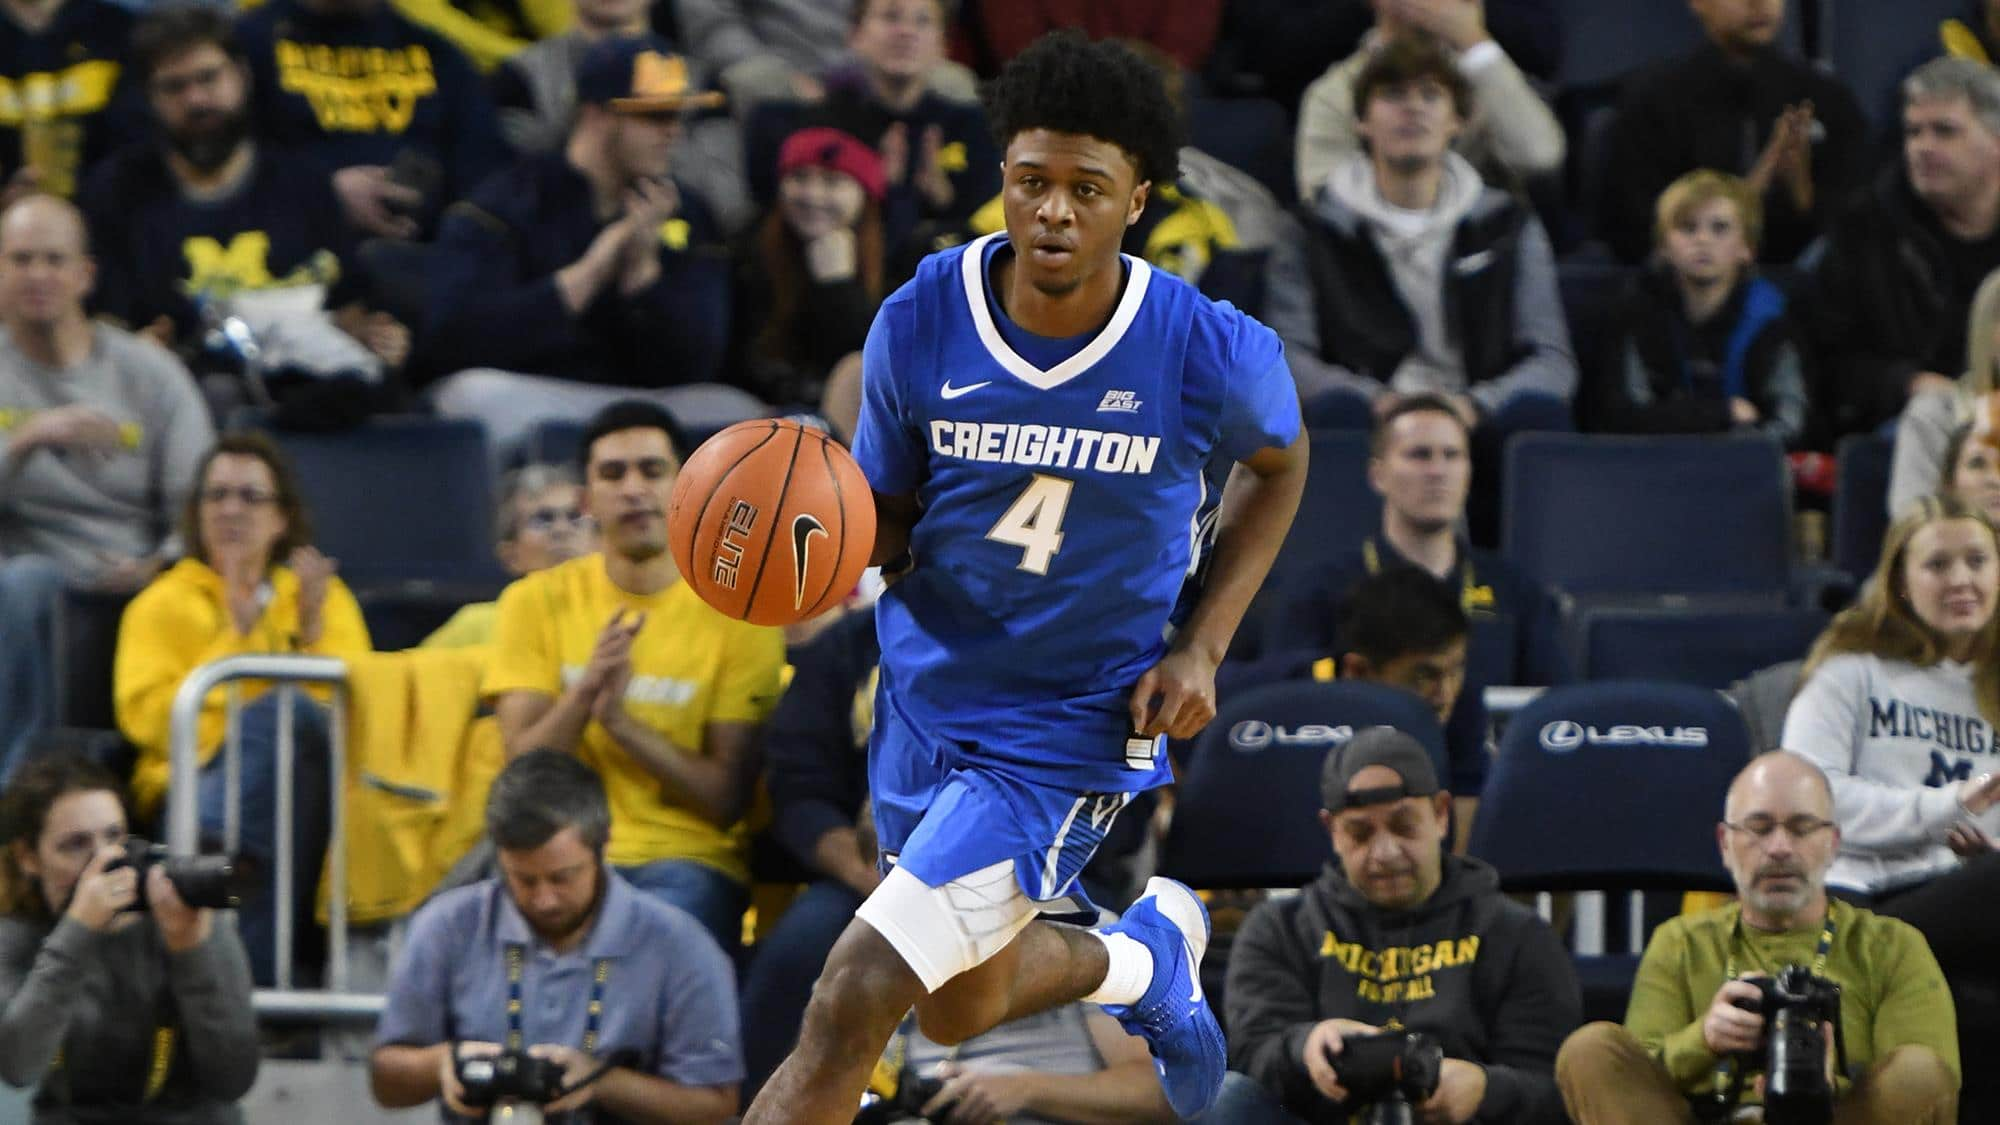 #21 Butler Bulldogs at #15 Creighton Bluejays – Big East Basketball Odds, Preview & Pick